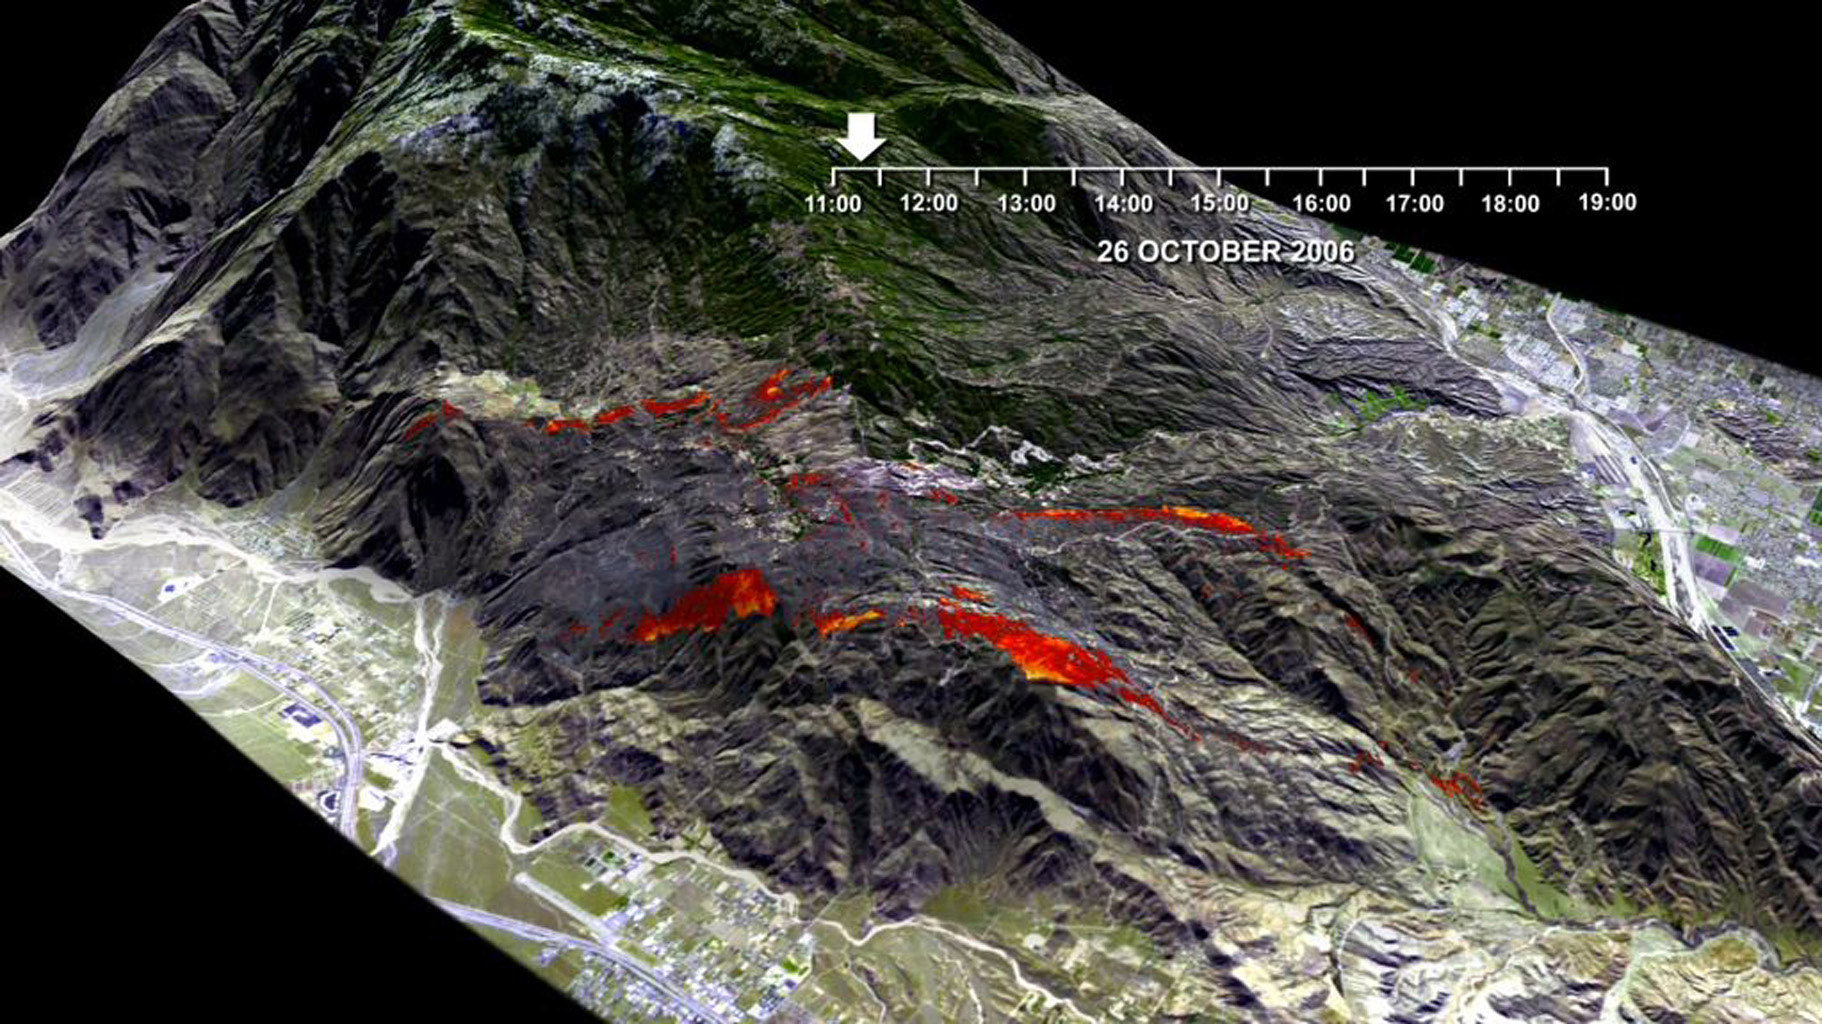 This frame is from a visualization of the rapid advance of the Esperanza Fire over the San Jacinto Mountains (Riverside County, CA) between 11:00 AM and 7:00 PM on October 26, 2006.